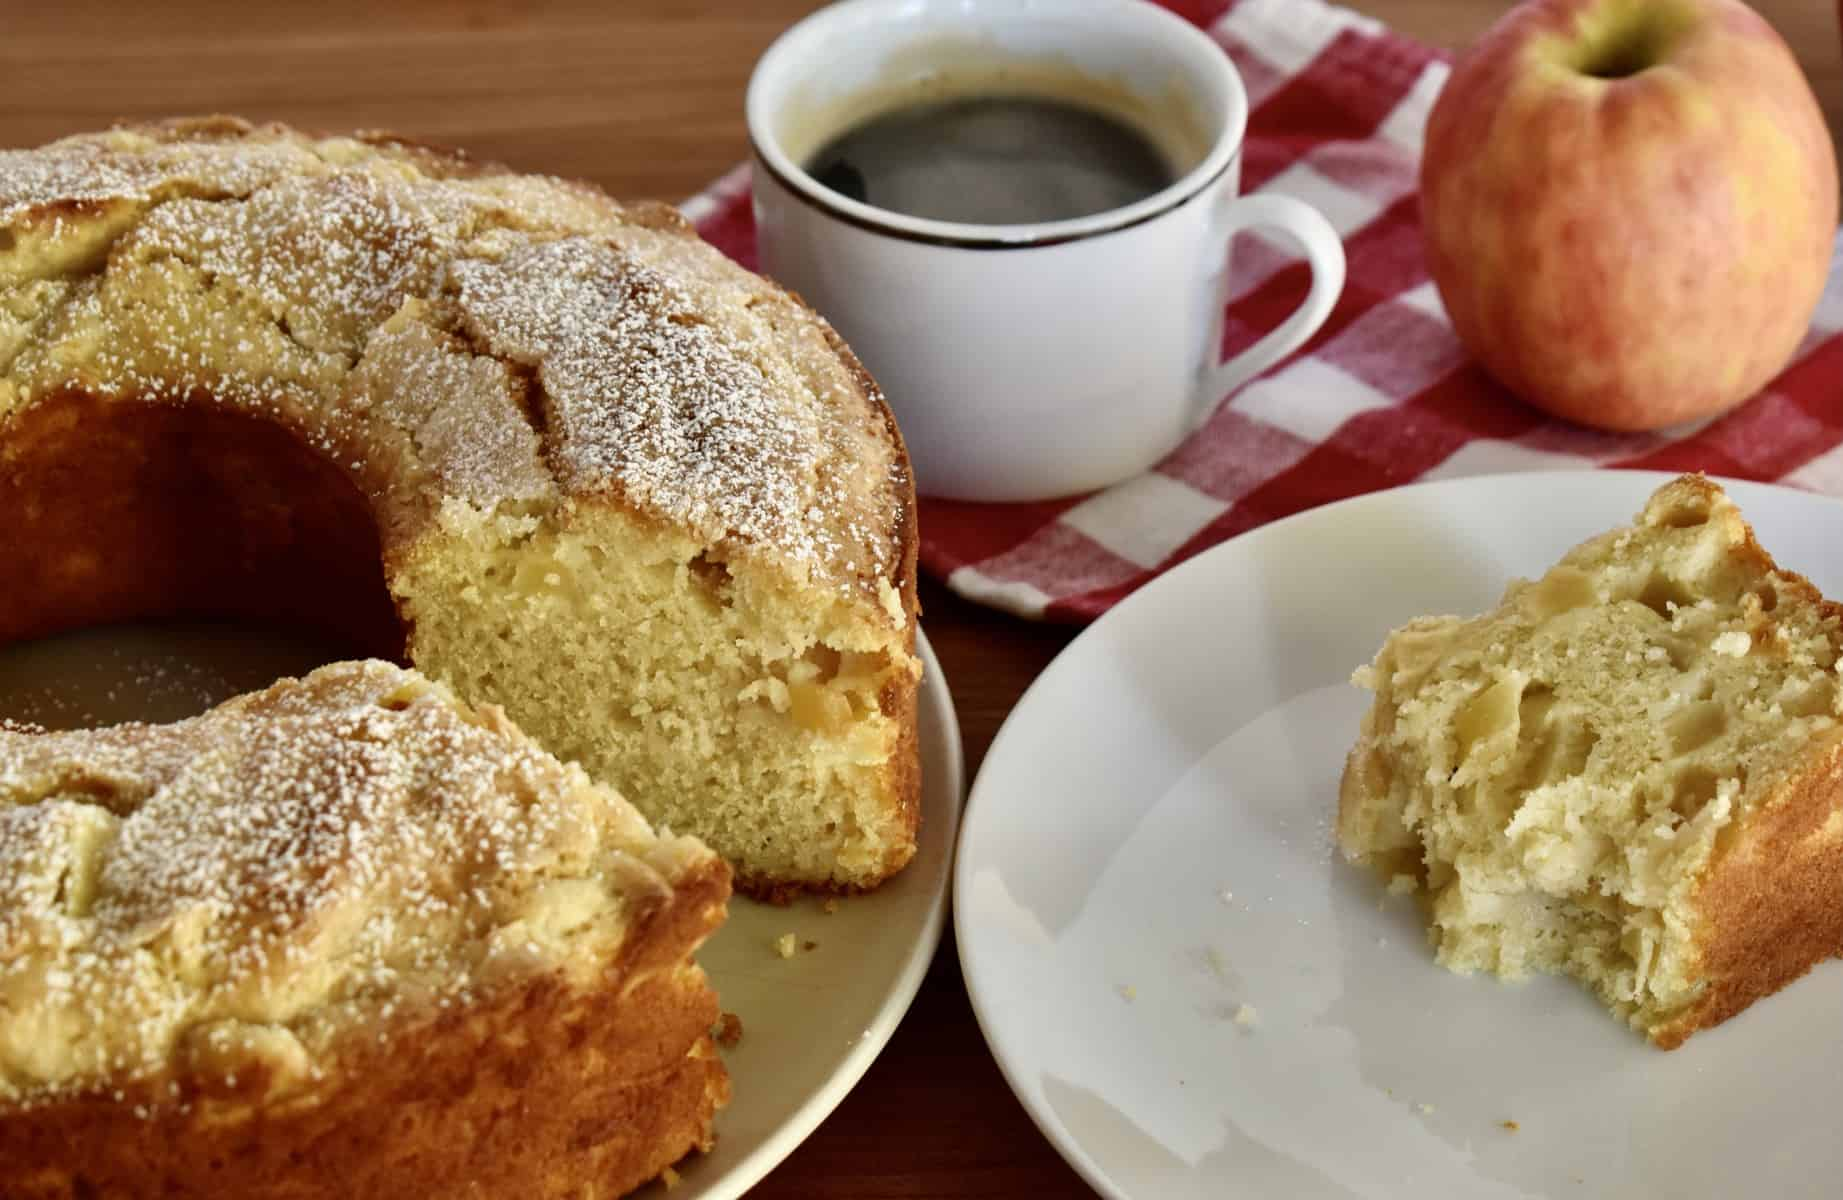 Italian Apple Cut on a counter with a cup of coffee and a plate with slice of cake on it.